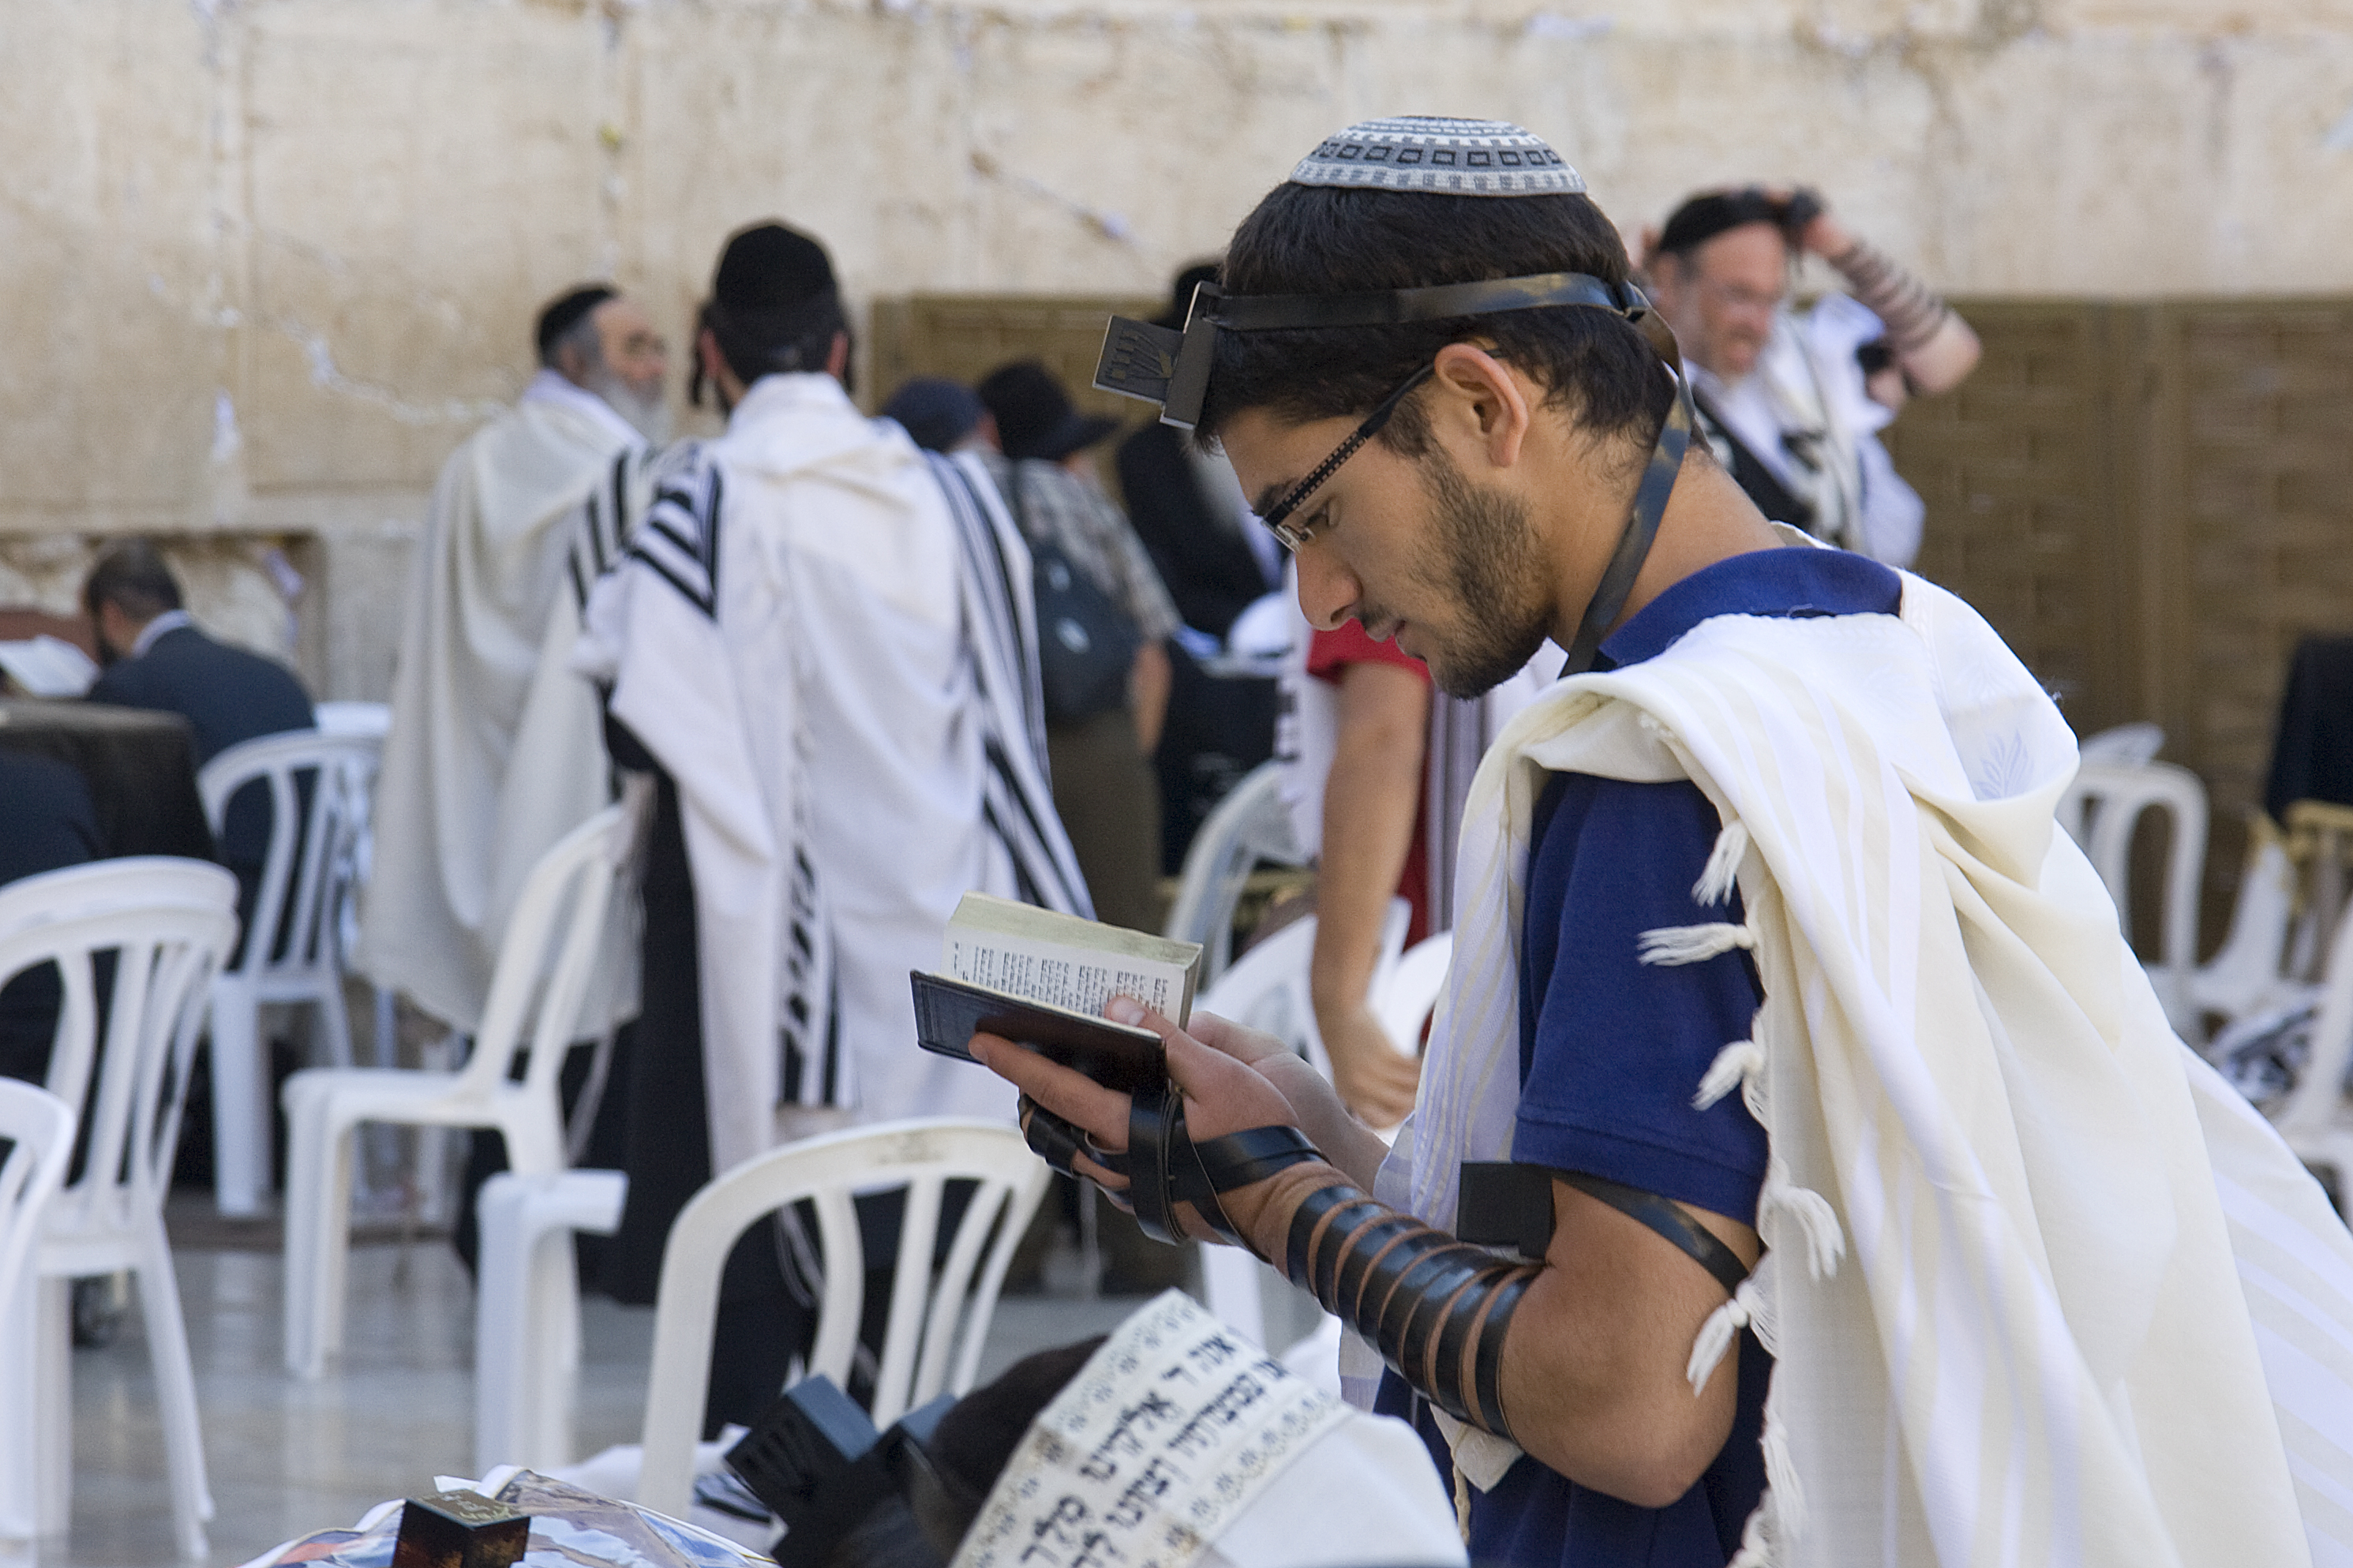 Women Wearing Tallit Under Clothes Everyday